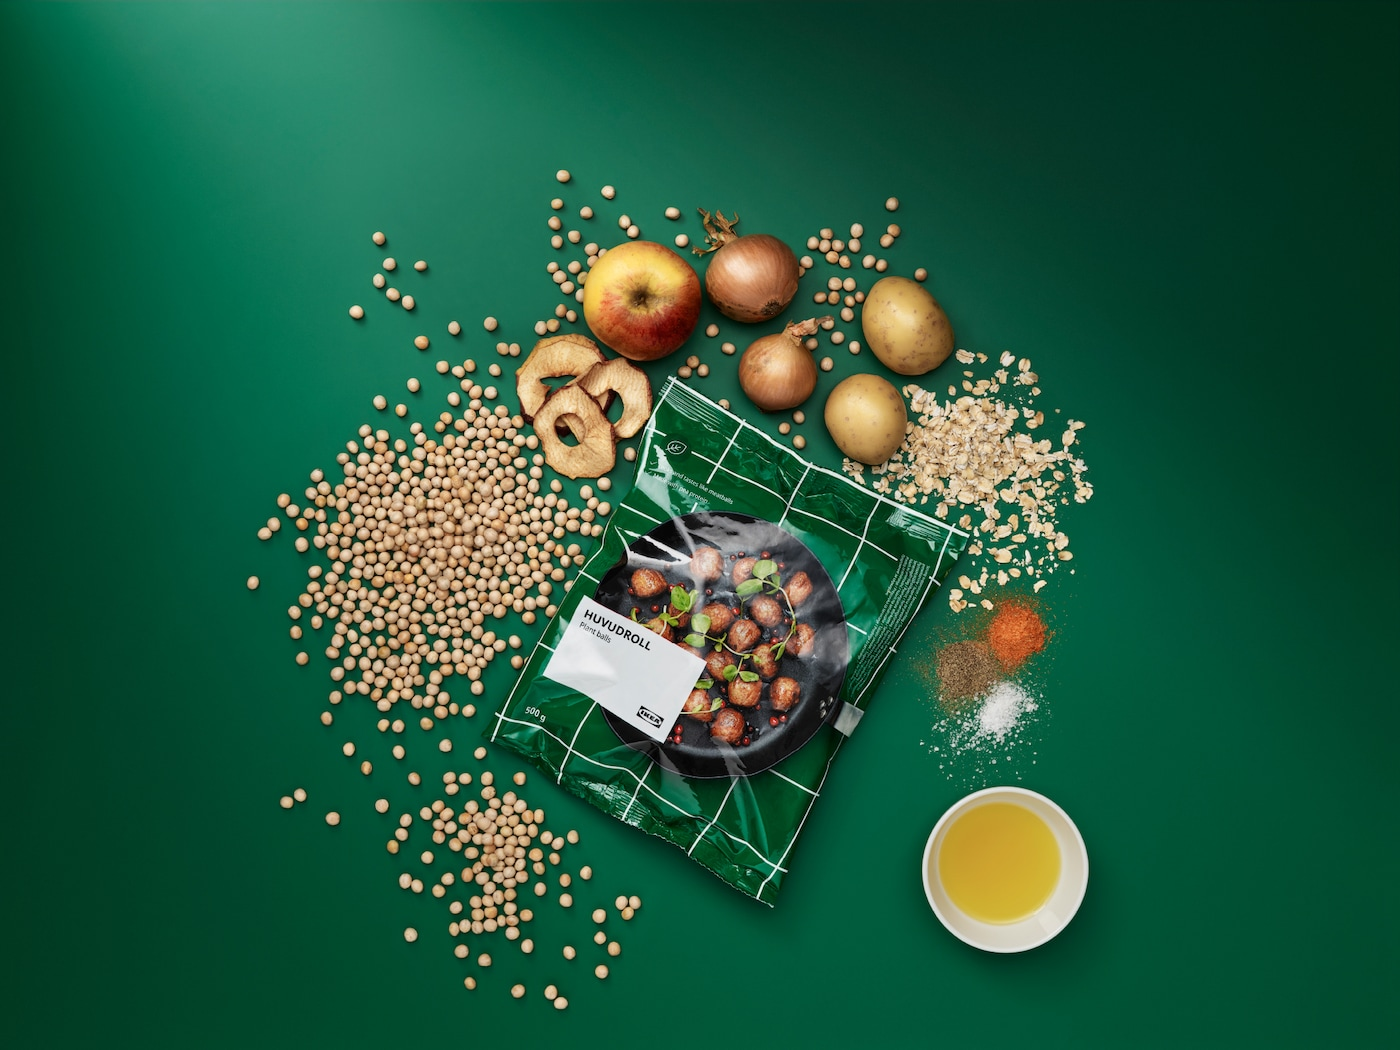 Package of HUVUDROLL plant balls, surrounded by the unprocessed ingredients: peas, oats, potatoes, onions, apples, spices.